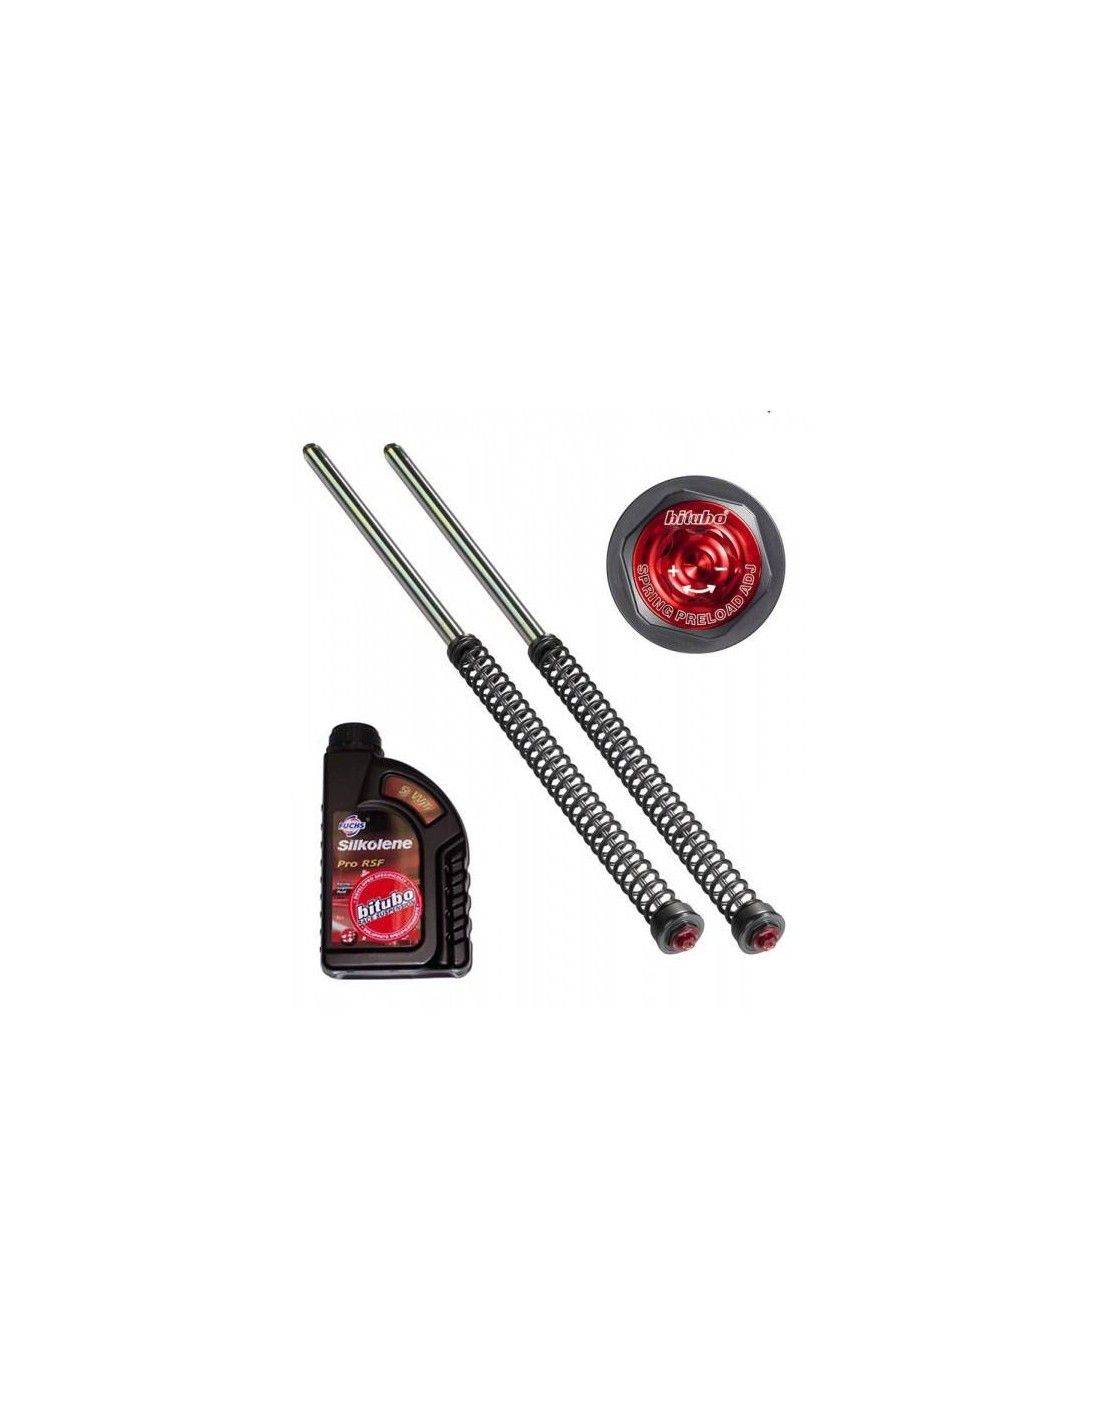 Bitubo Abb09 Complete Fork Cartridge With Spring